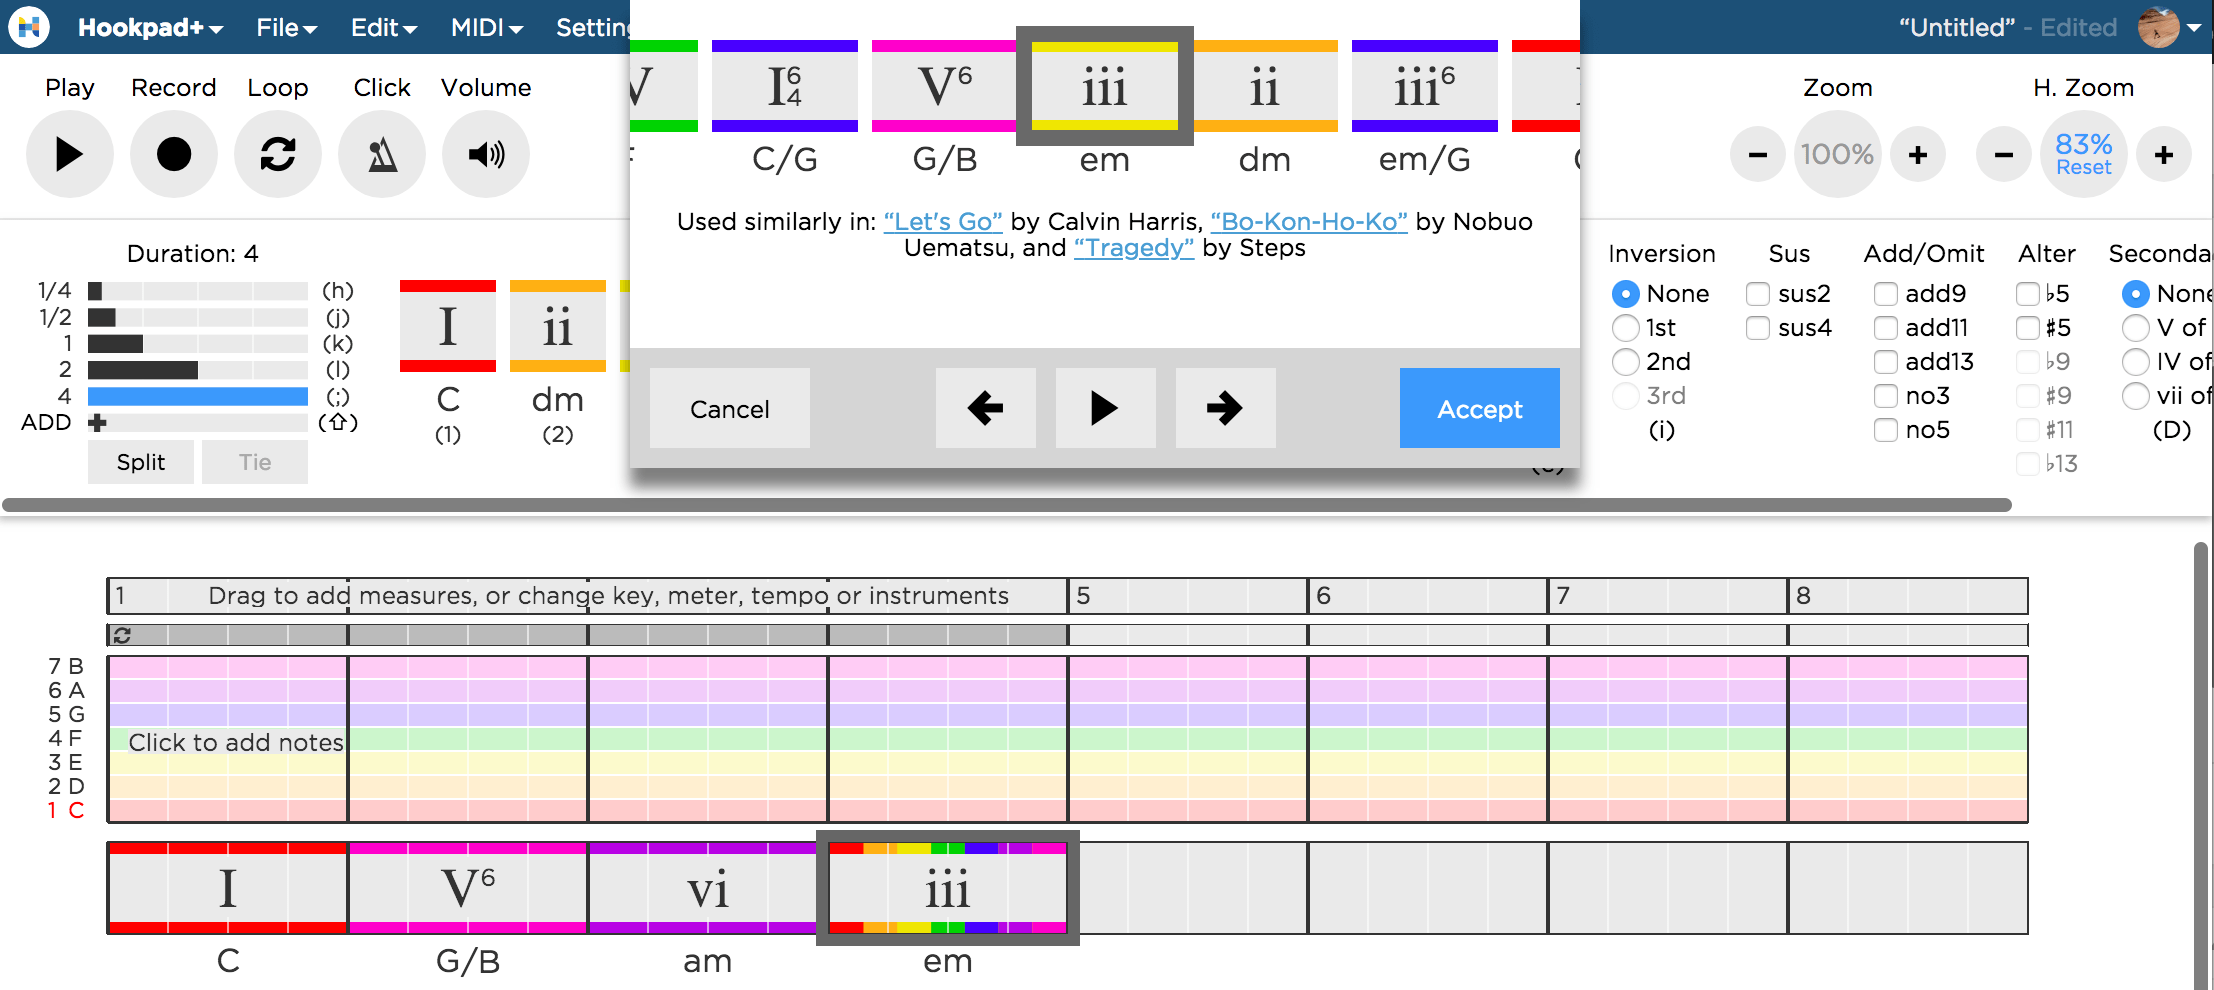 Hookpad's Magic Chord lets you ask Hookpad what it thinks is the best chord to use in a given situation.  Hookpad scans > 10000 songs and shows you what other other artists have done in the same scenario.